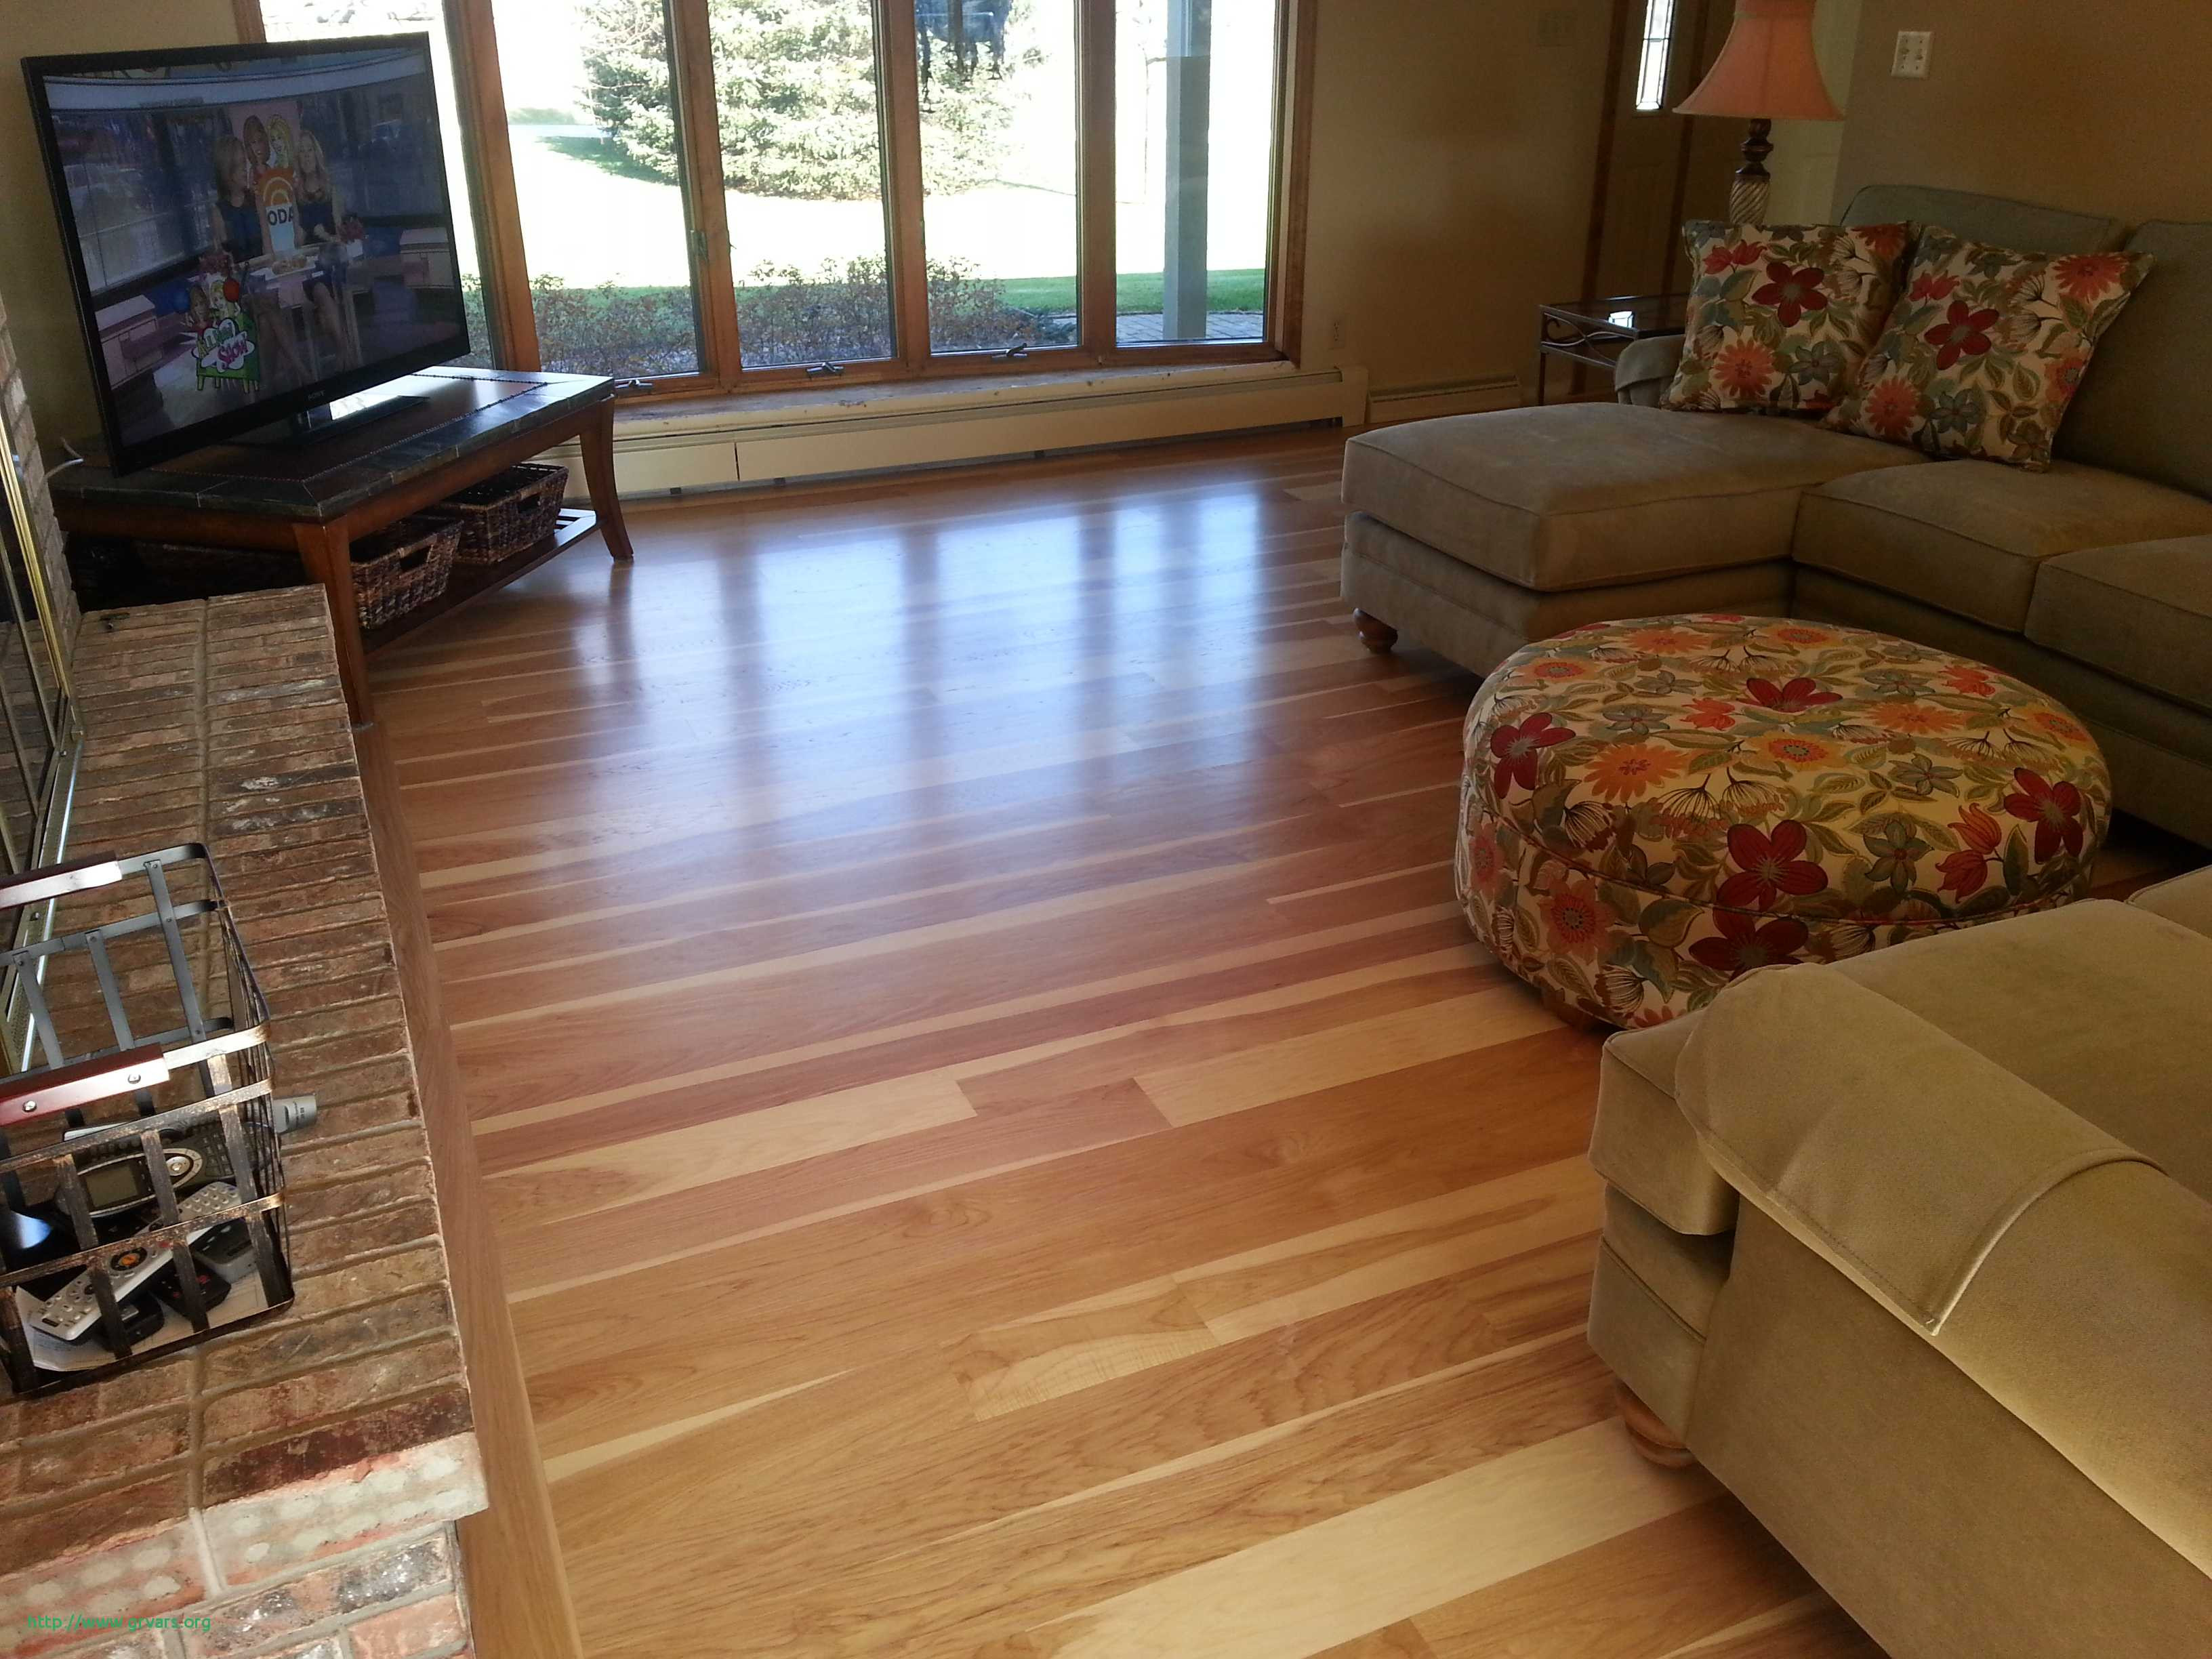 how to use minwax hardwood floor reviver of 18 beau what type of hardwood floor do i have ideas blog for custom hickory wide plank hardwood floor miwlaukee wi